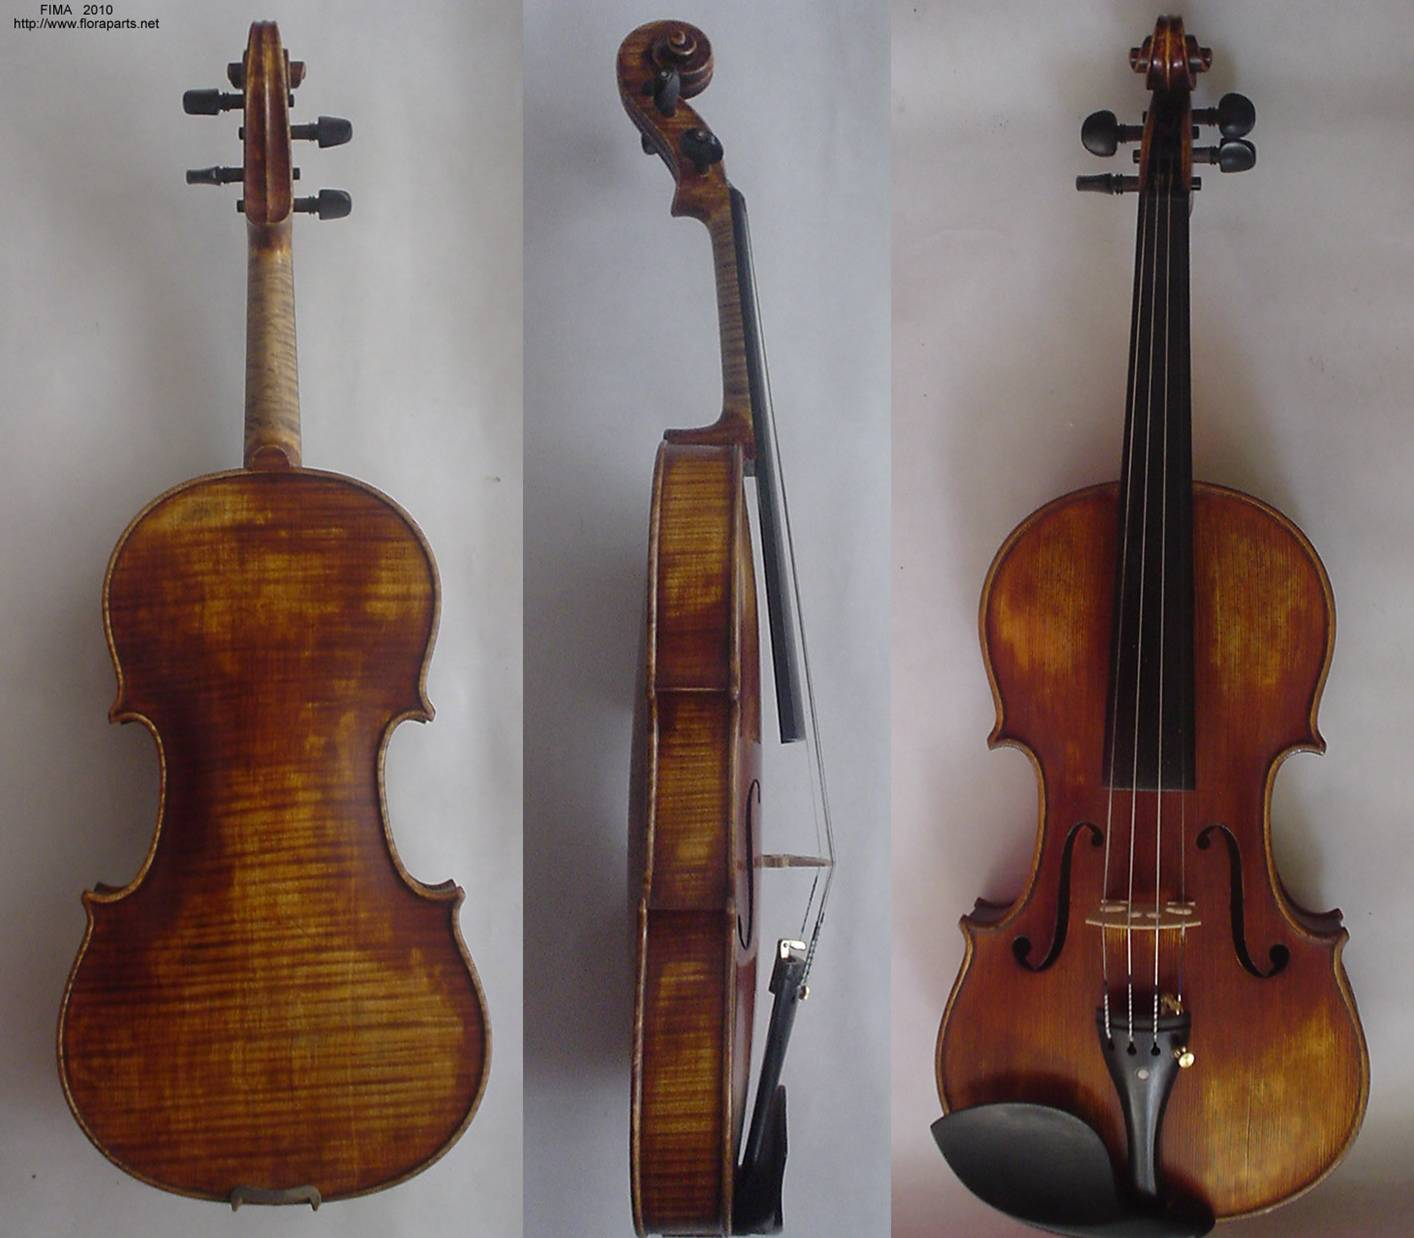 FIMA Master Antiqued Violin Series   Model  FPC